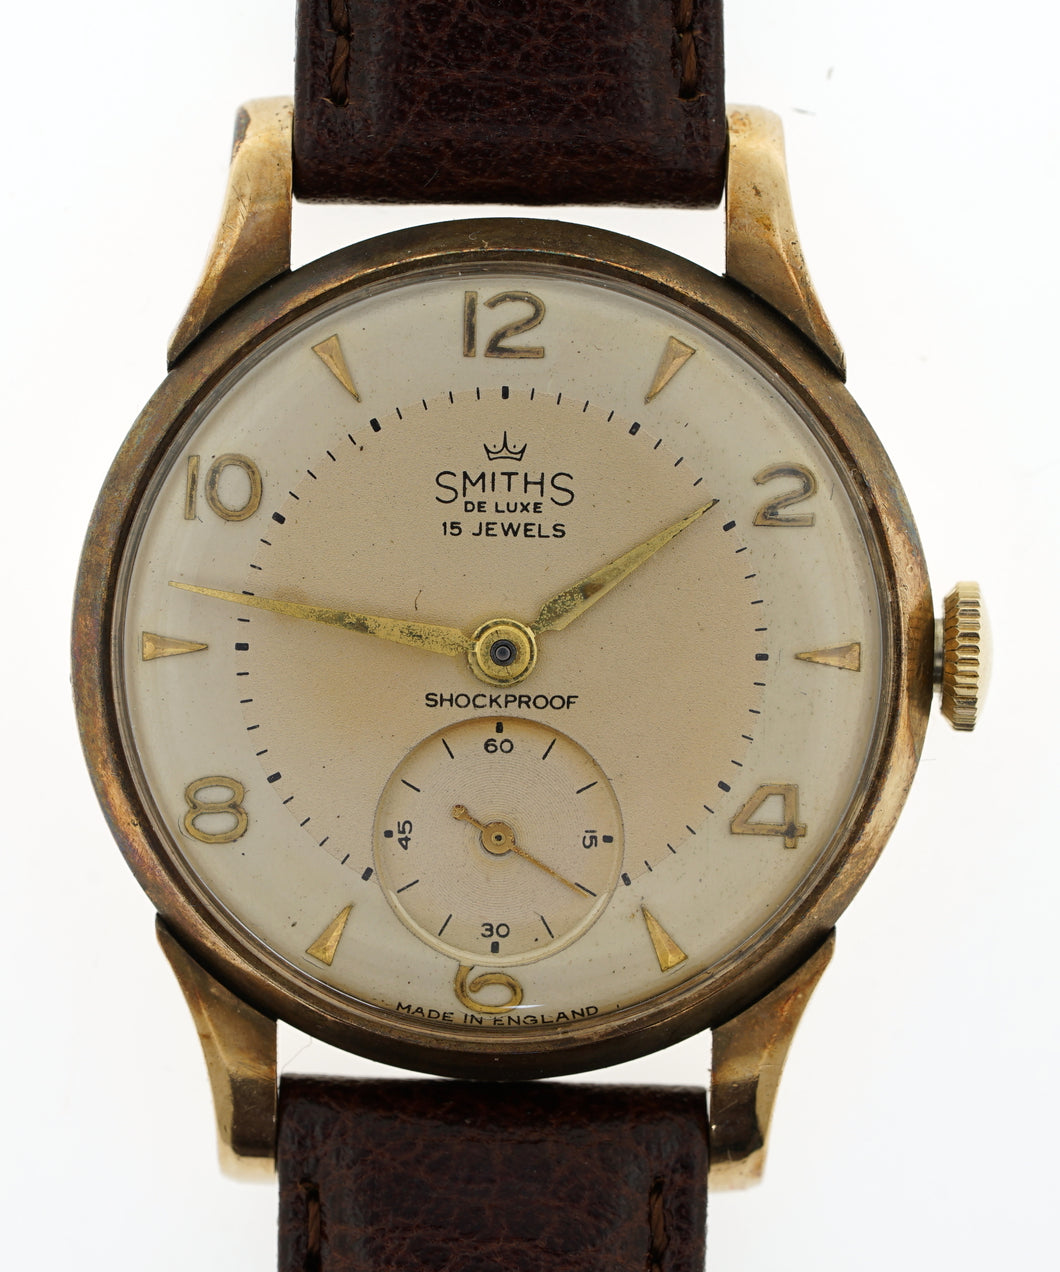 DELUXE SMITHS A504 HALLMARKED SOLID 9T GOLD 1959 PRESENTATION WATCH